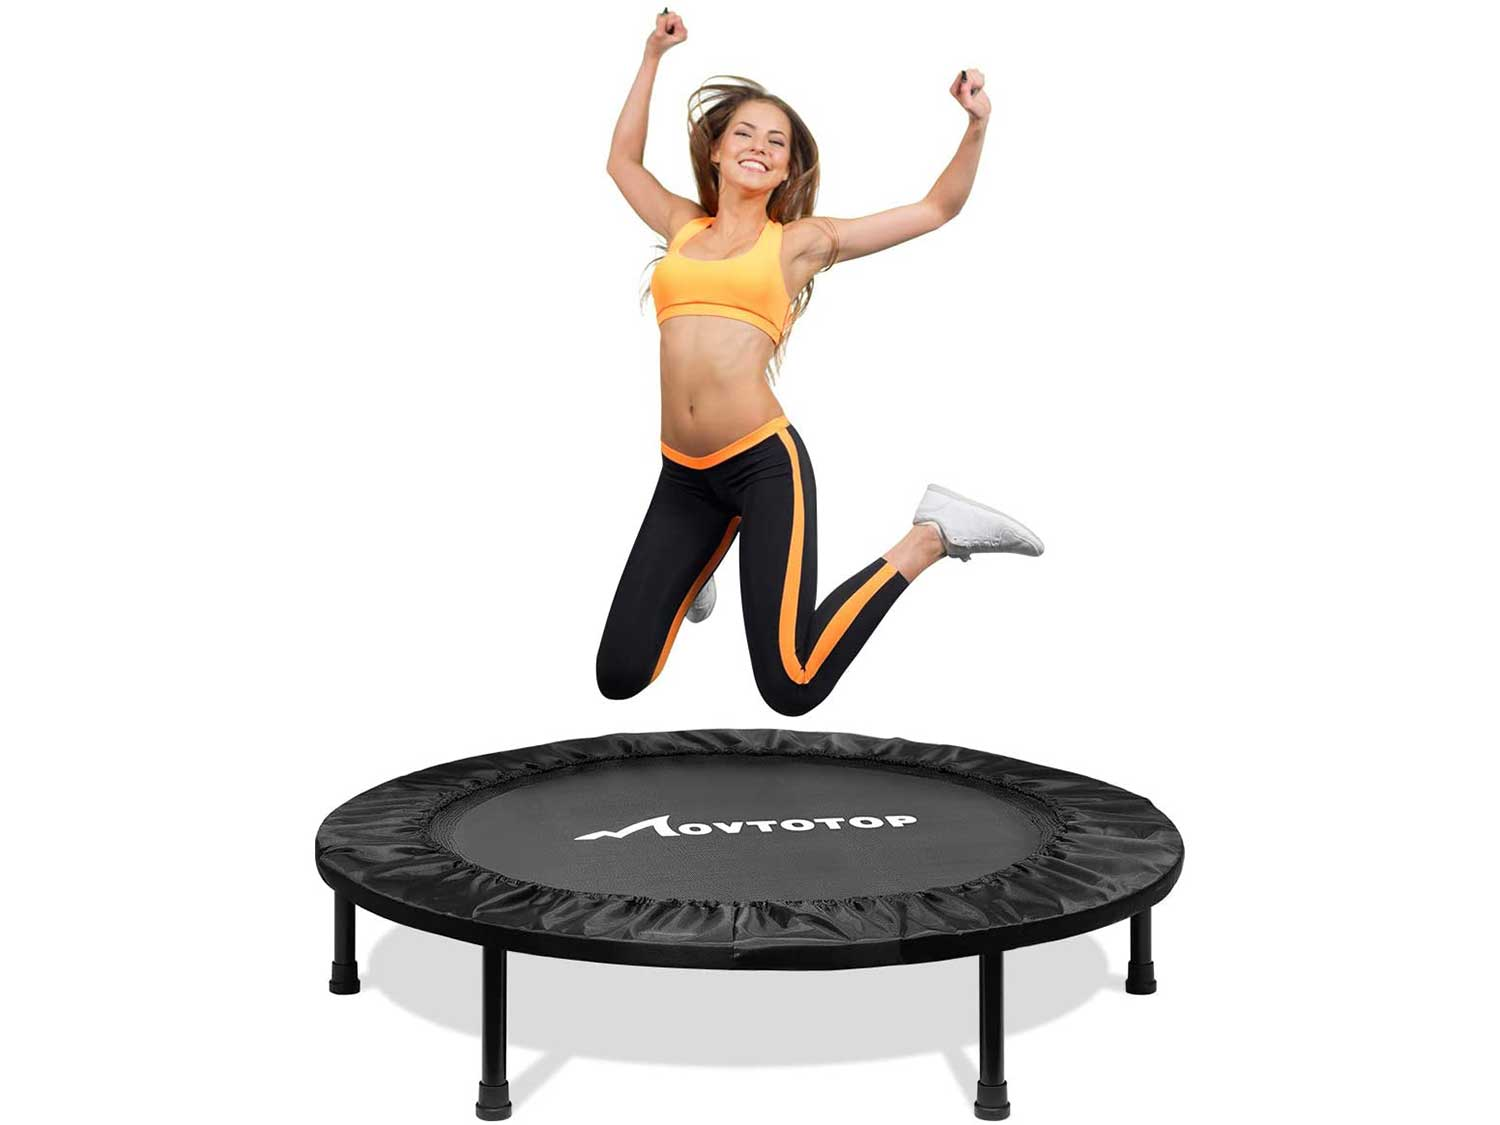 MOVTOTOP Fitness Trampoline, Foldable Mini Trampoline for Adults and Kids with Safety & Anti-Skid Pads Exercise Rebounder Workout Max Load 300lbs, Black